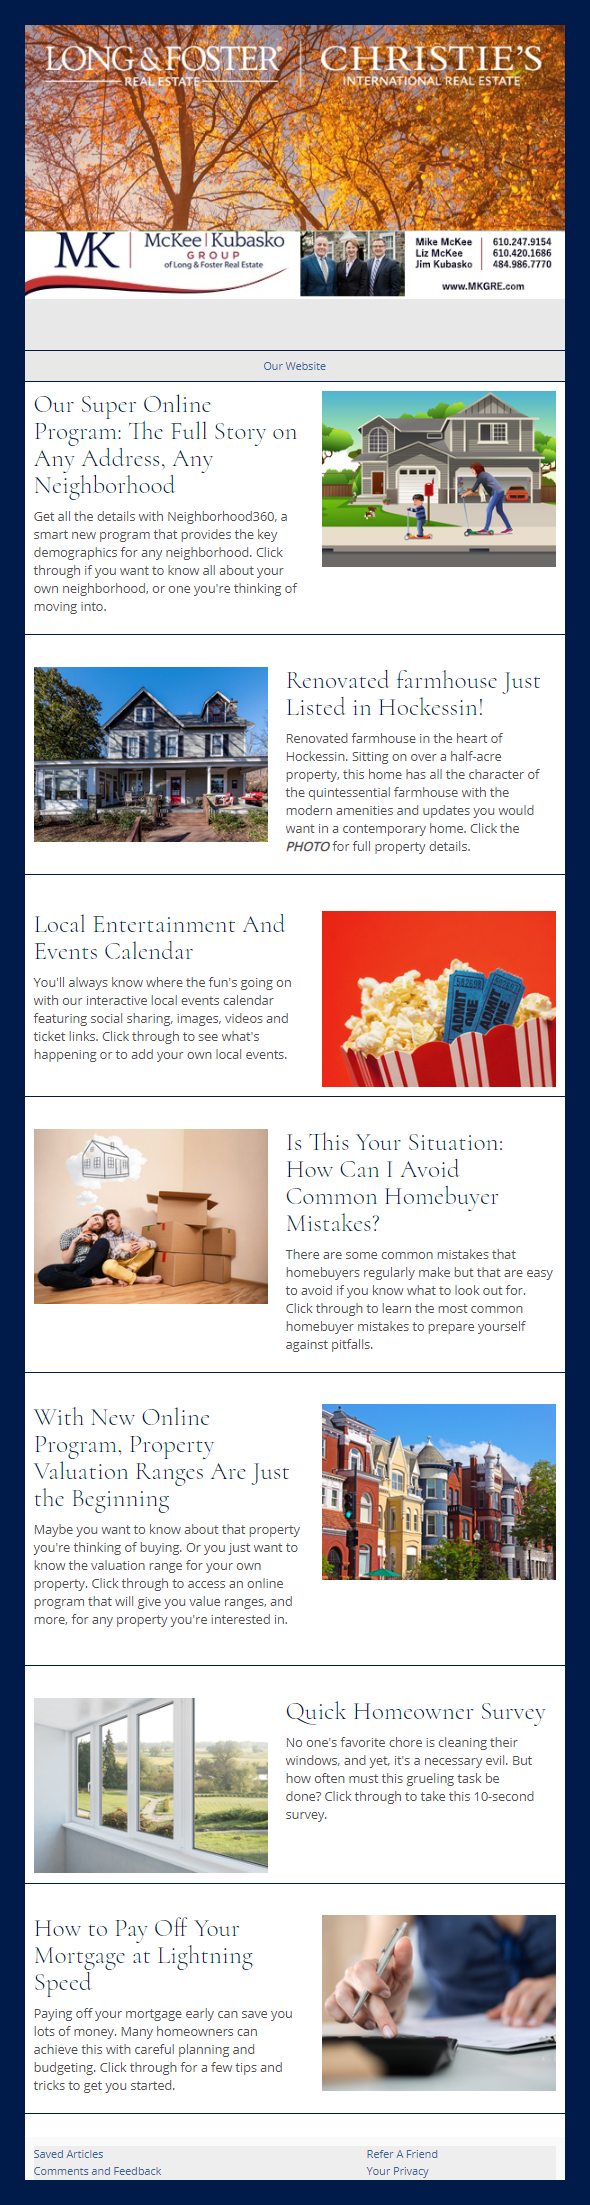 Long & Foster Real Estate Inc. - HomeActions Sample Email Newsletter